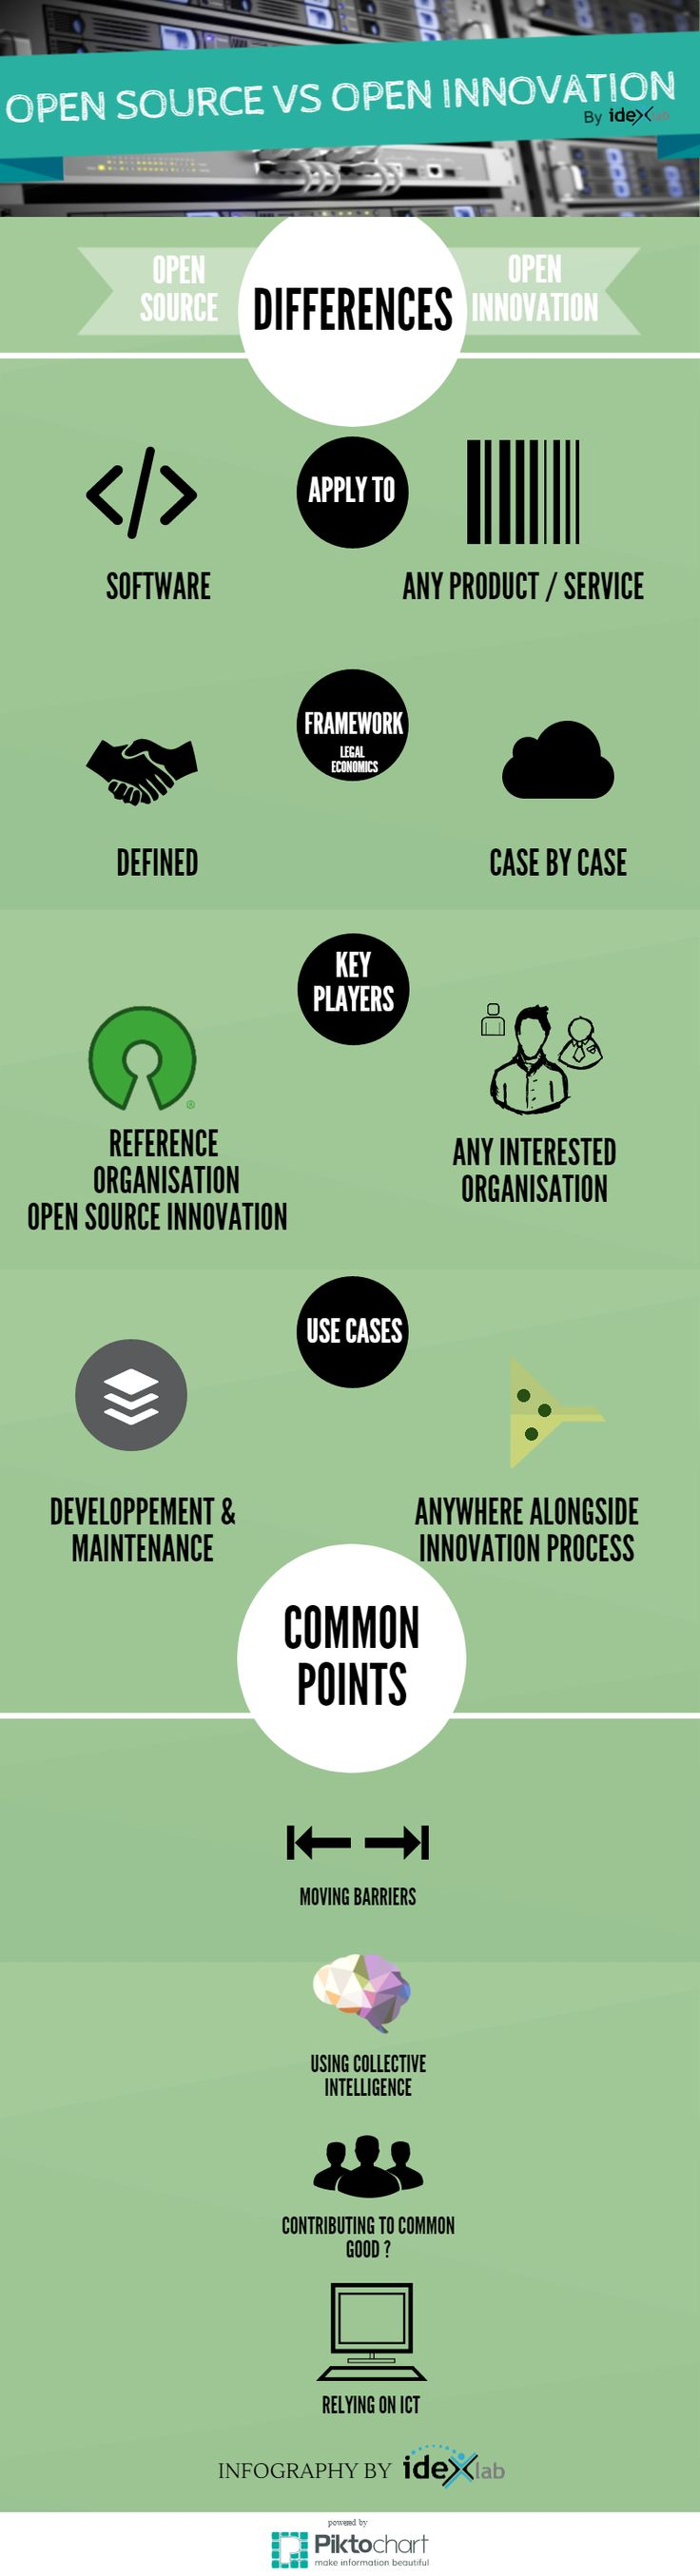 Open Source Vs Open Innovation #Infography Common points and differences